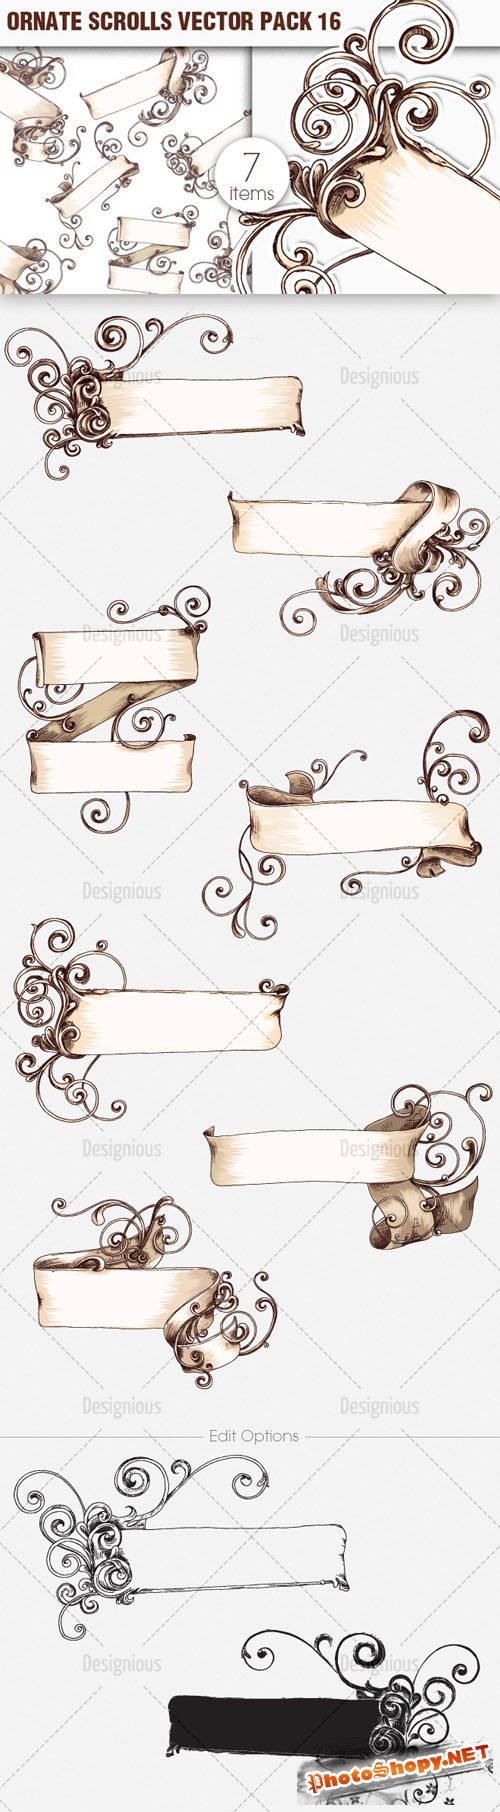 Ornate Scrolls Photoshop Vector Pack 16